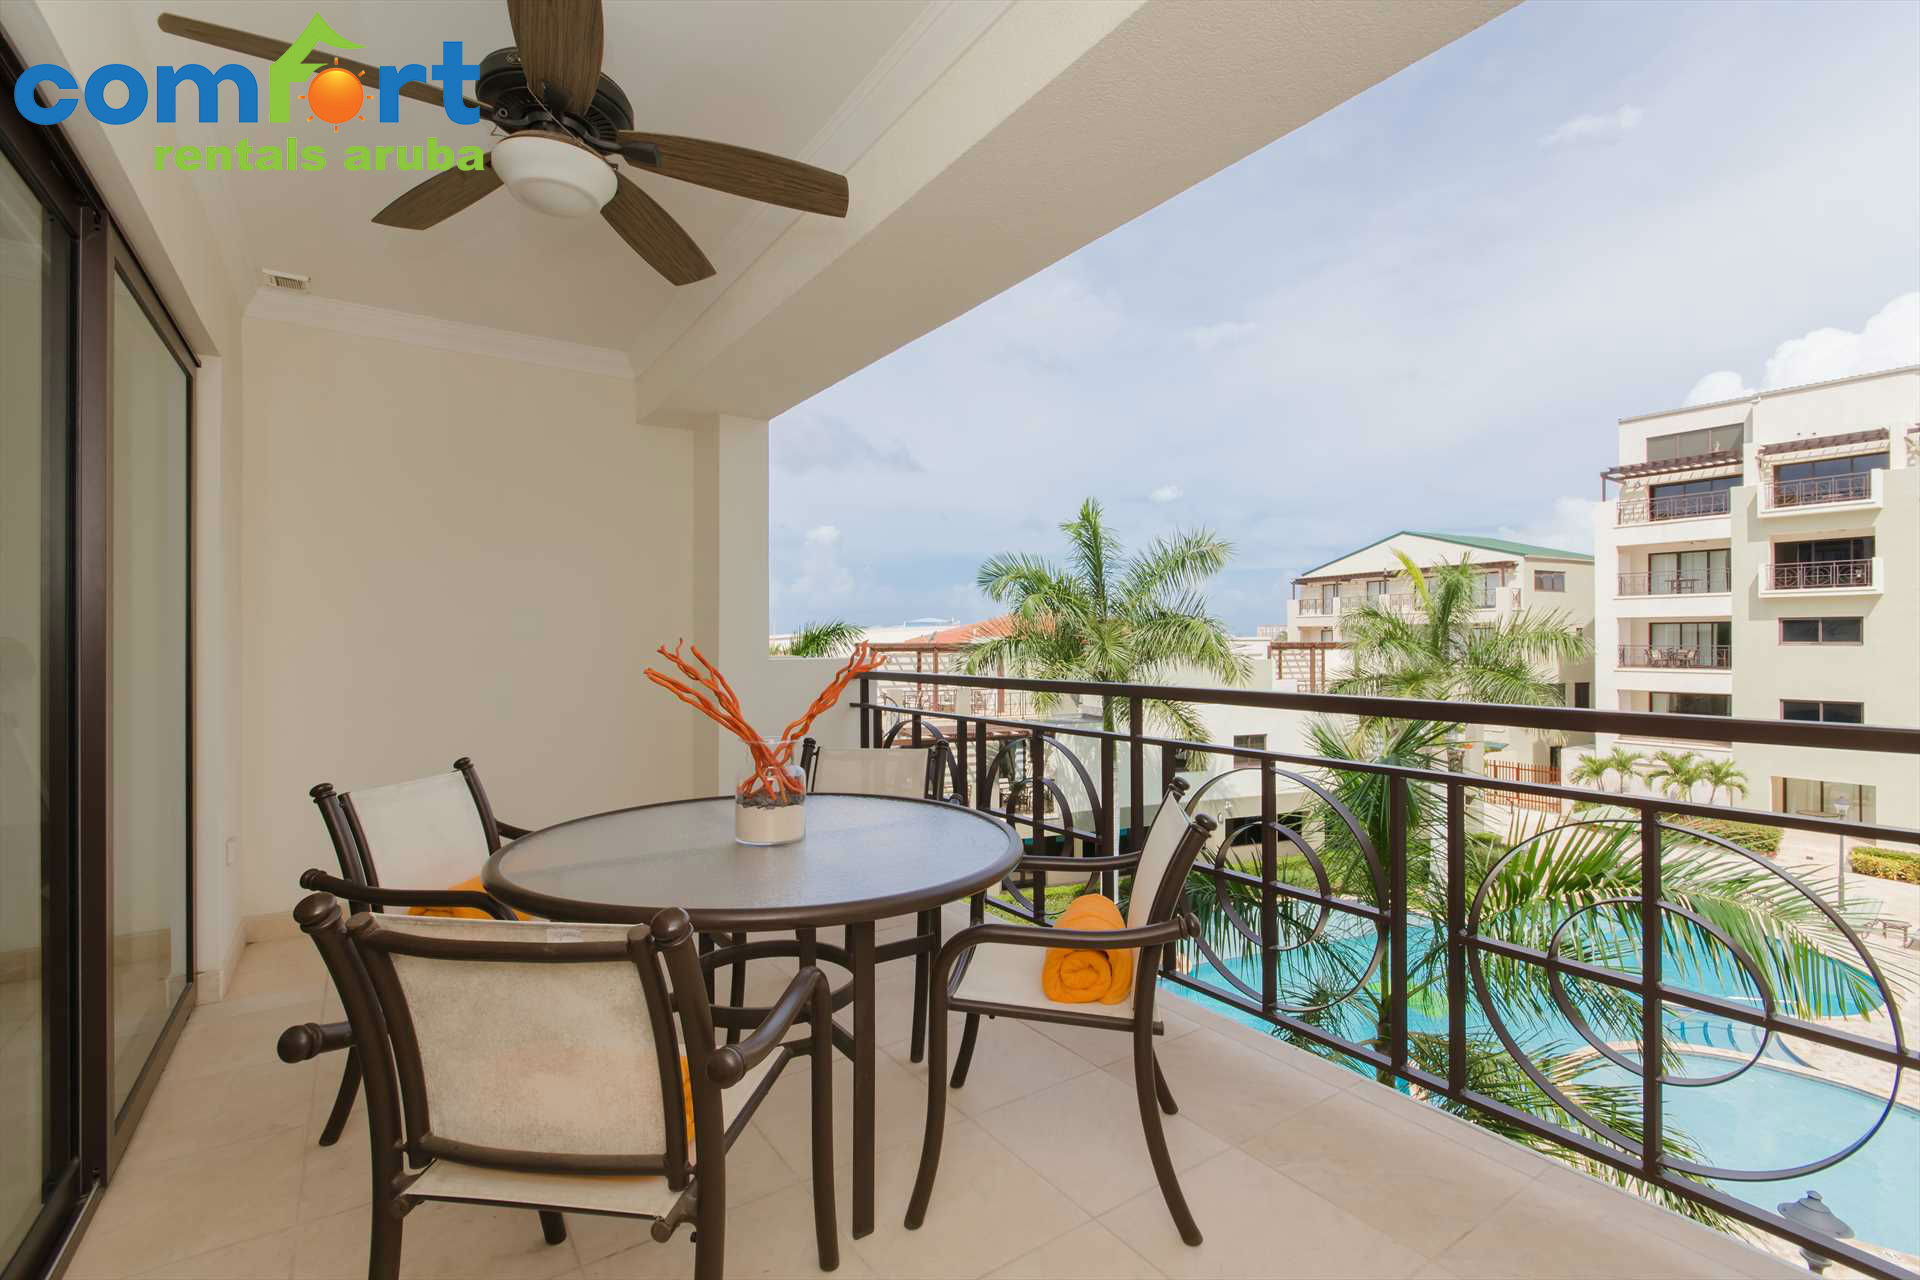 Enjoy your vacation days out on your spacious balcony